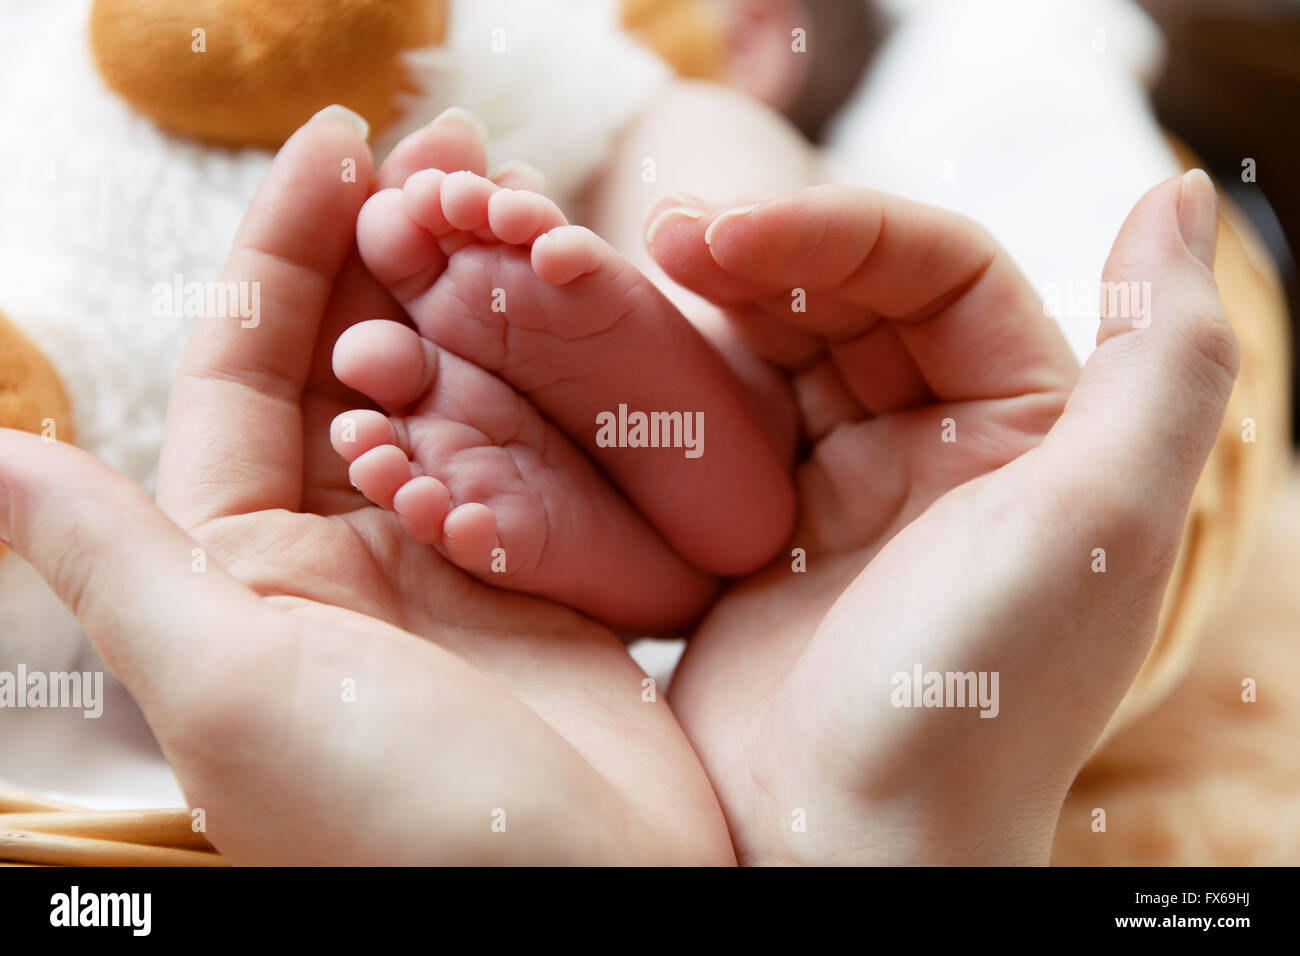 Little baby's feet in mother's hands - Stock Image